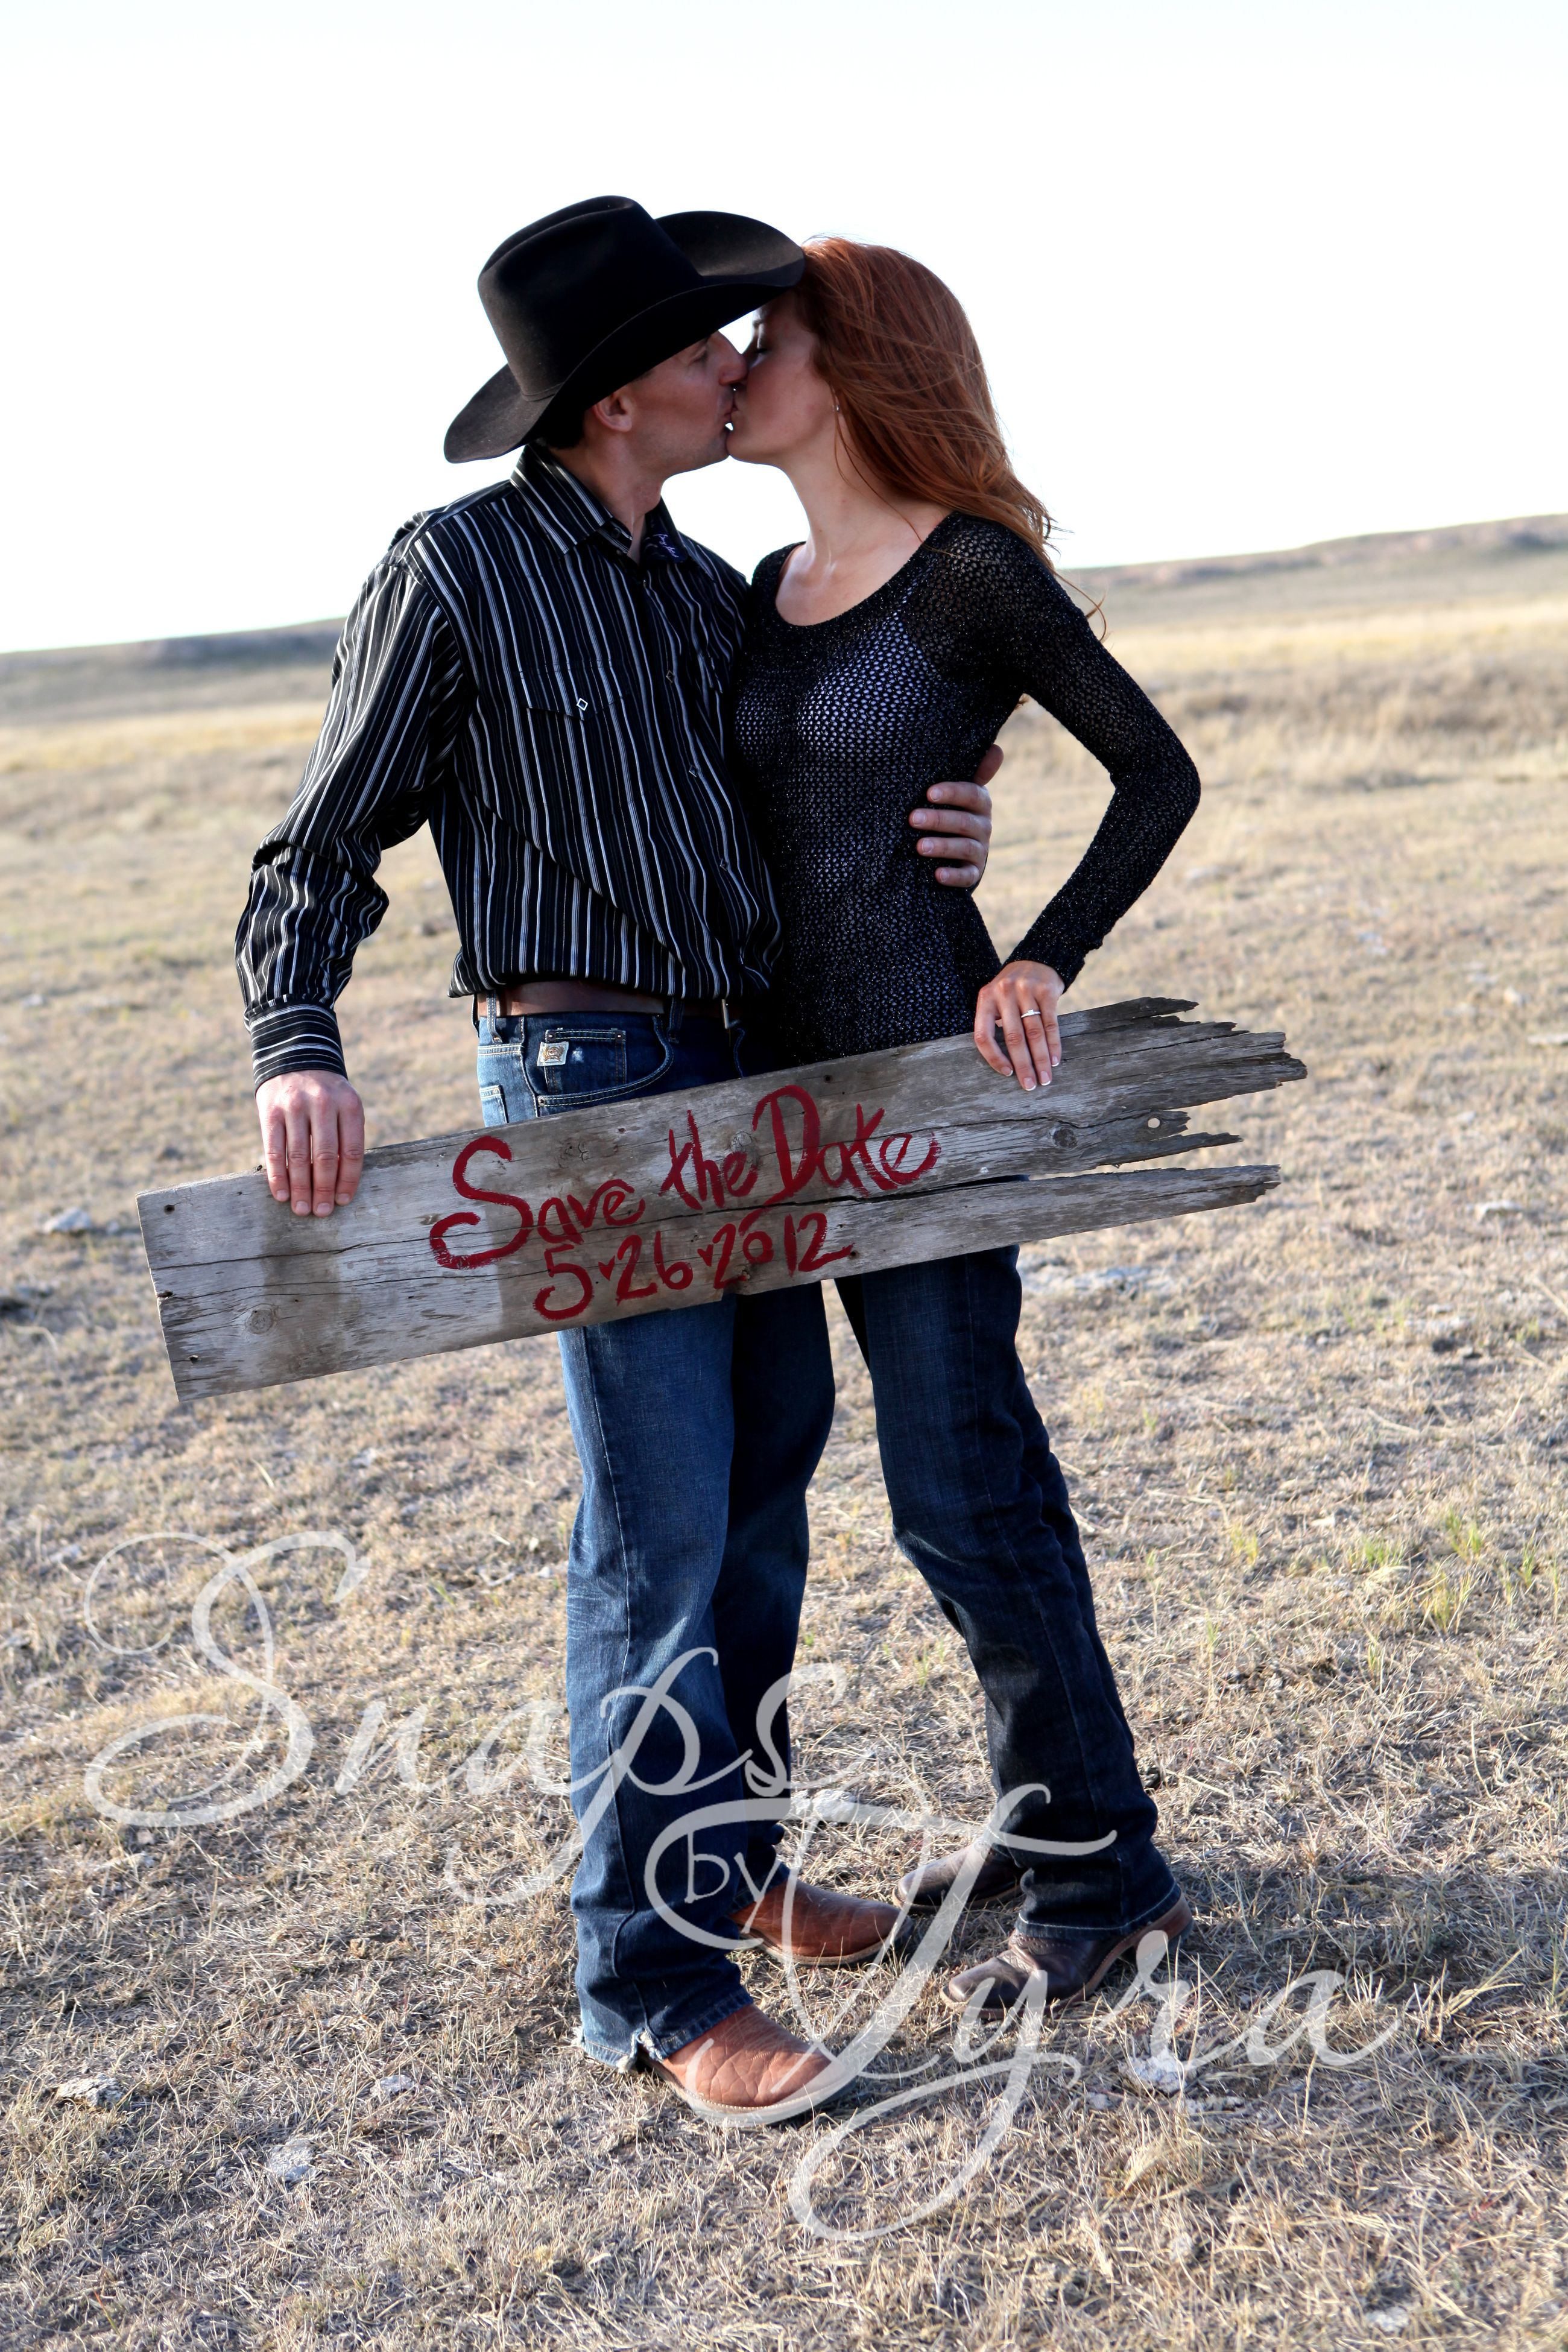 Aw Cute Cowboy And Cowgirl Photo